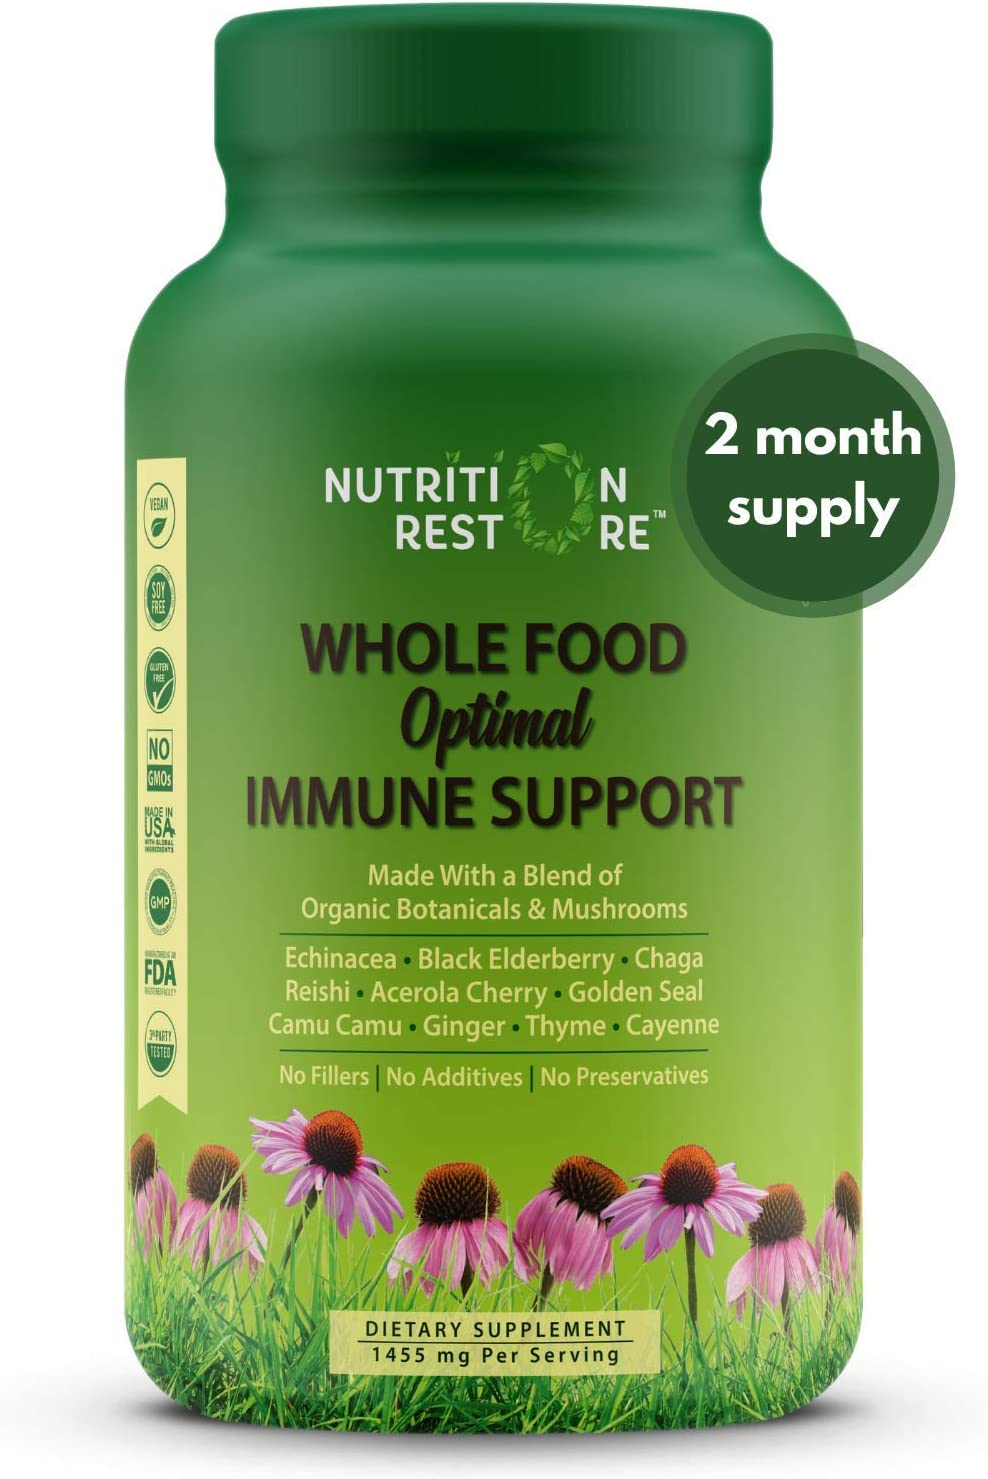 Whole Food Optimal Immune Support | Organic Ingredients | Echinacea, Elderberry, Chaga, Reishi, Acerola Cherry, Goldenseal, Camu Camu, Ginger, Thyme, Cayenne | Vegan | 60 Servings | 1455 mg/Serving